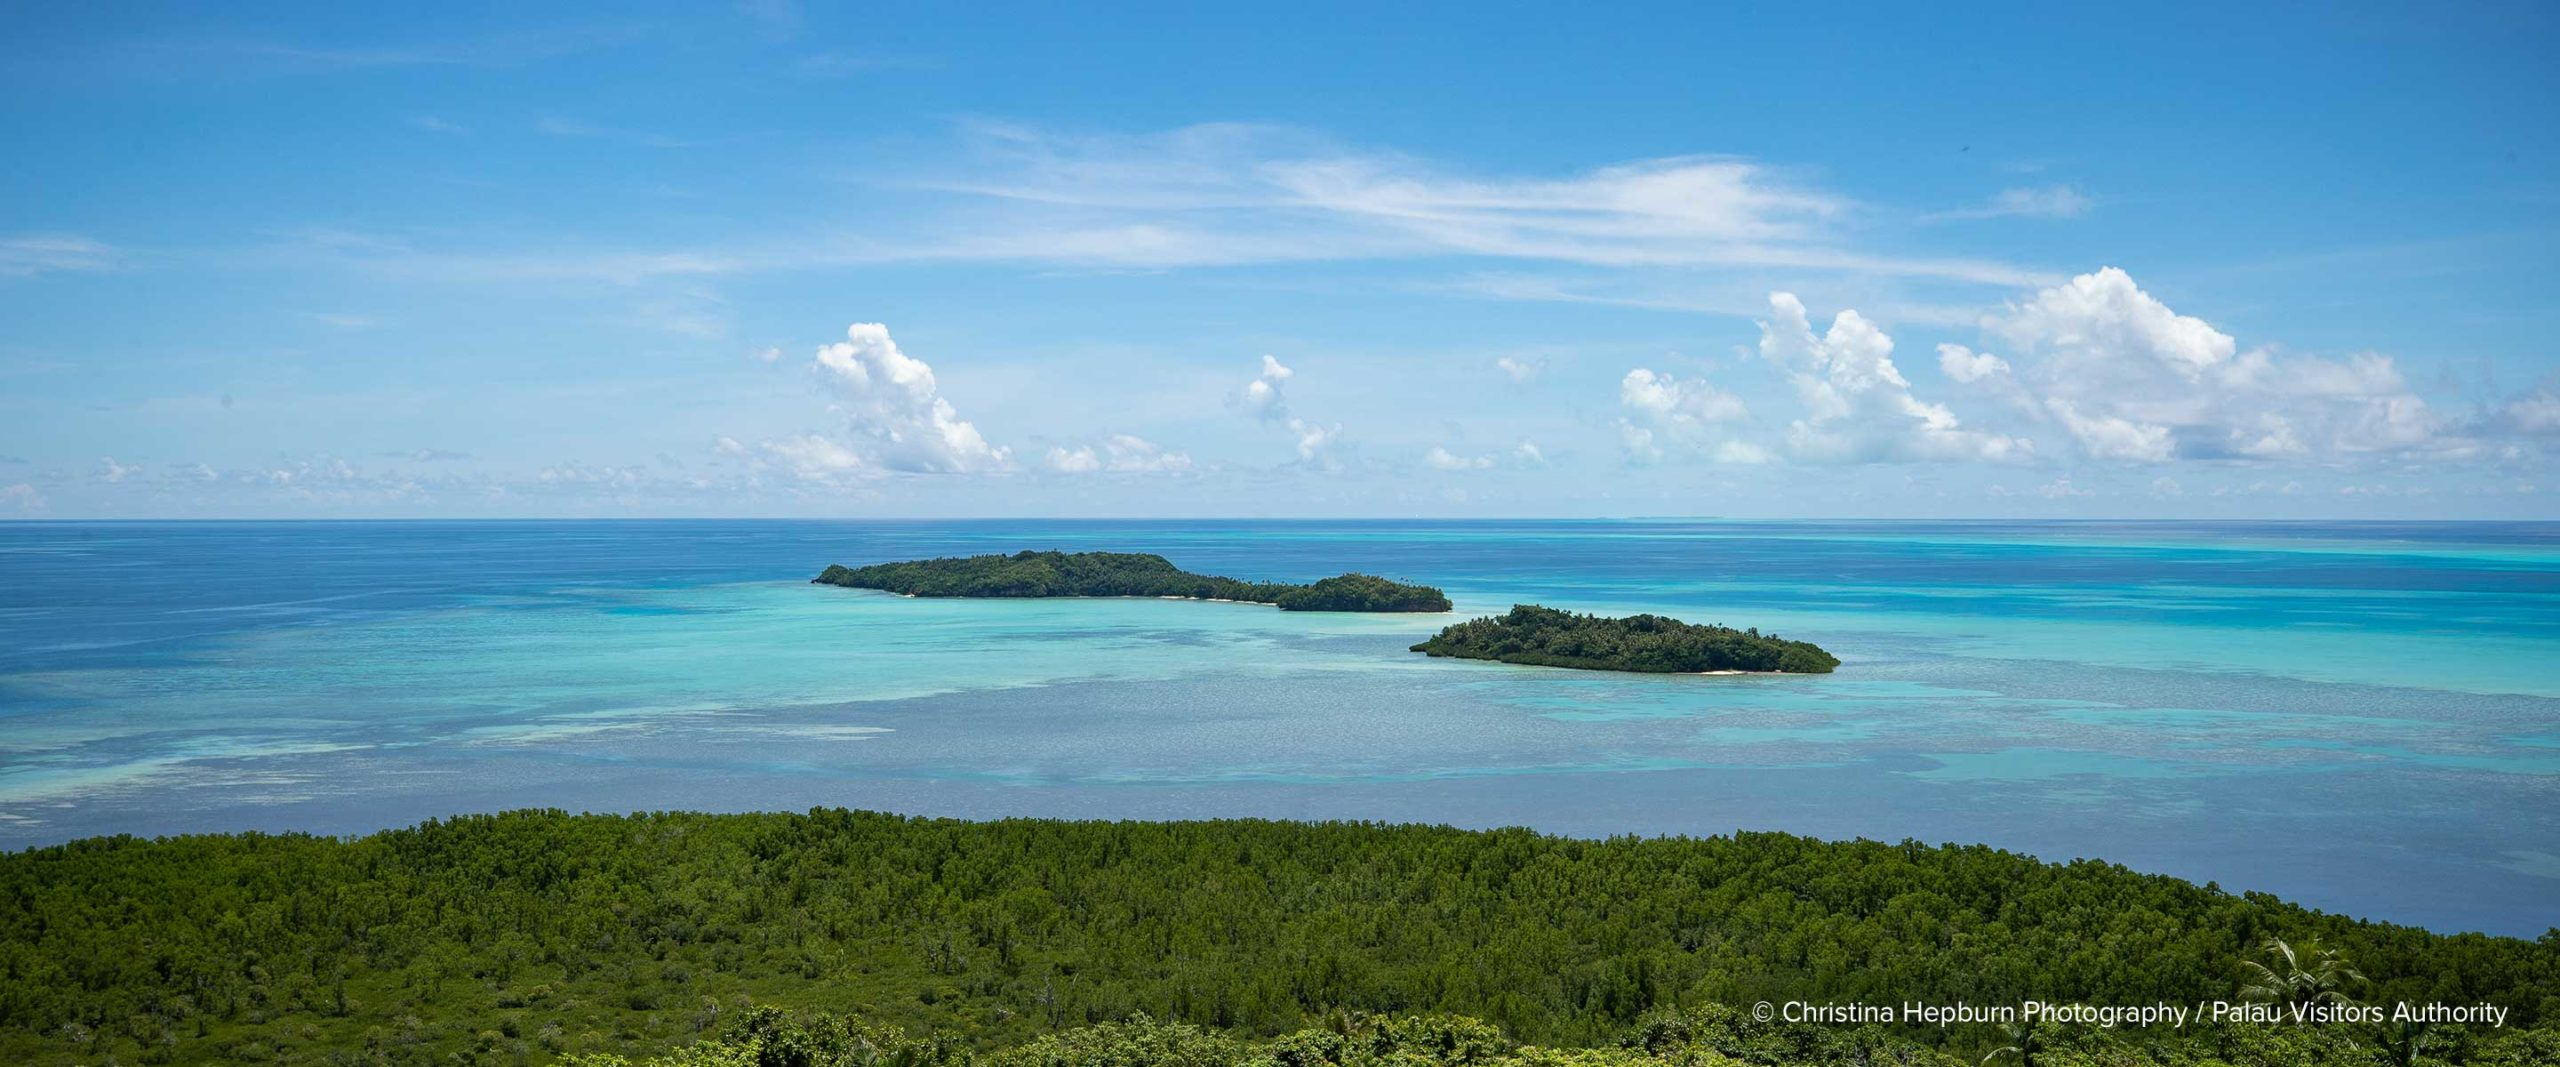 Palau ocean and land view